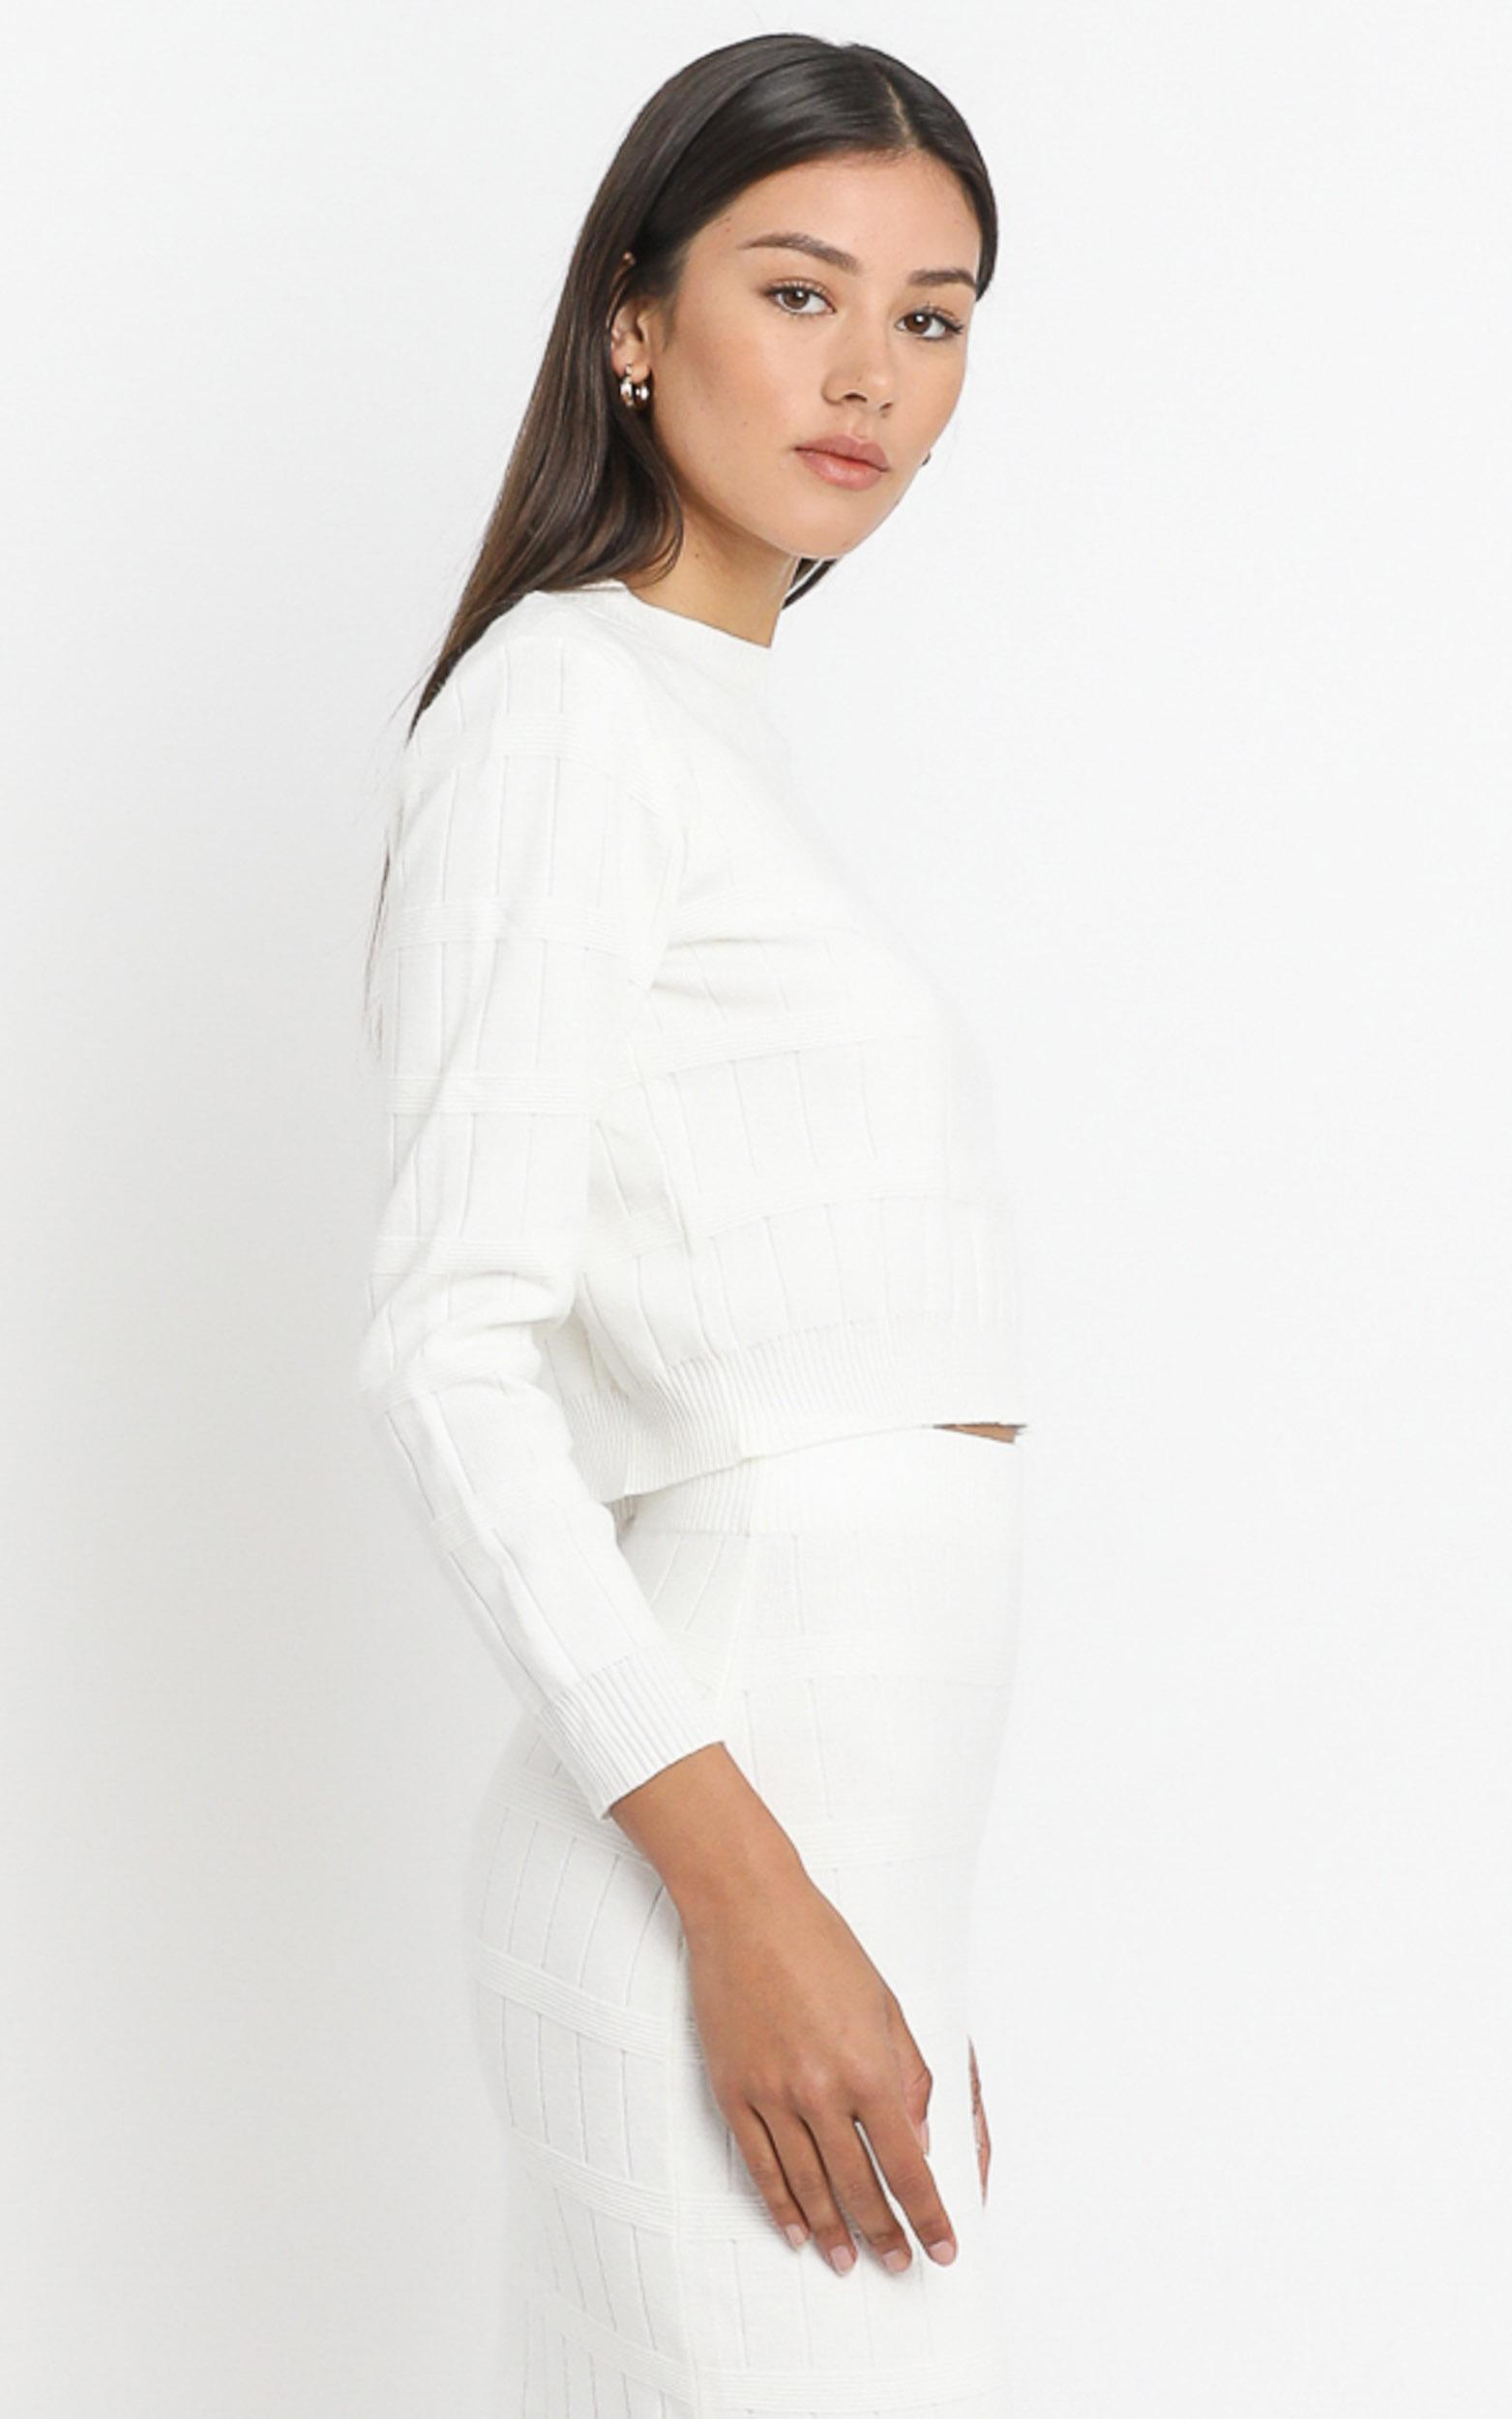 Amai Knit Top in White - 8 (S), White, hi-res image number null